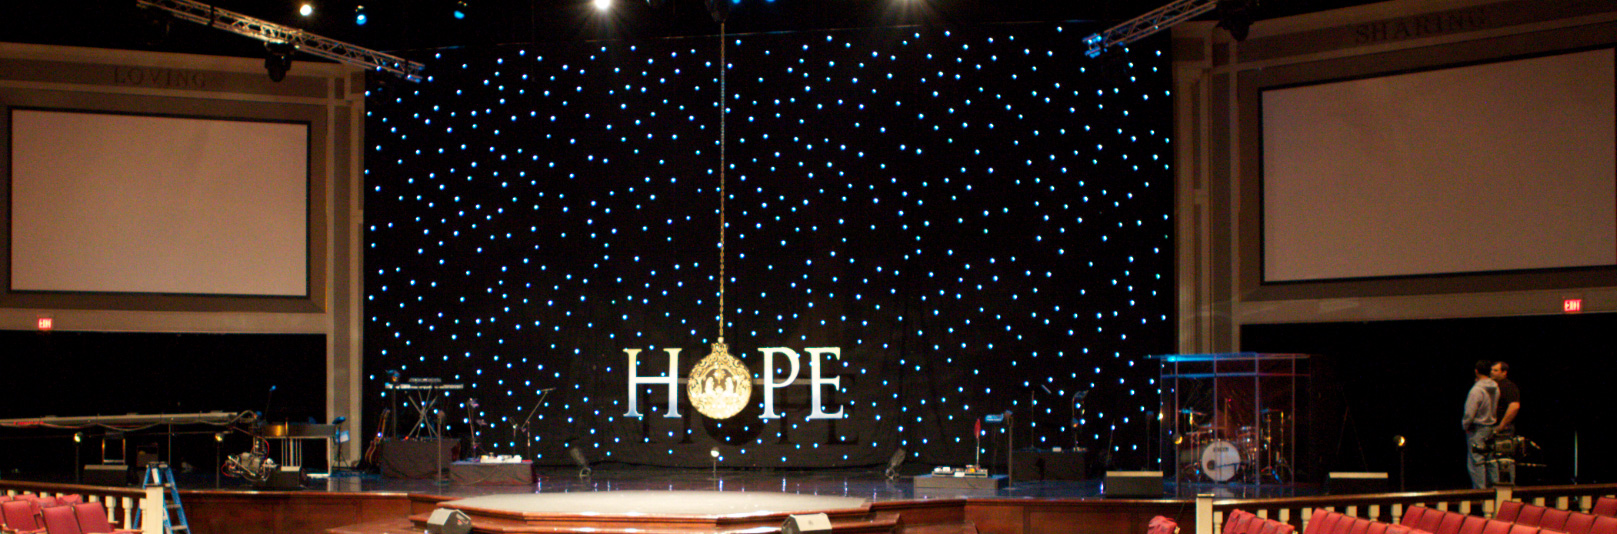 dangling hope church stage design ideas church stage design ideas - Church Design Ideas